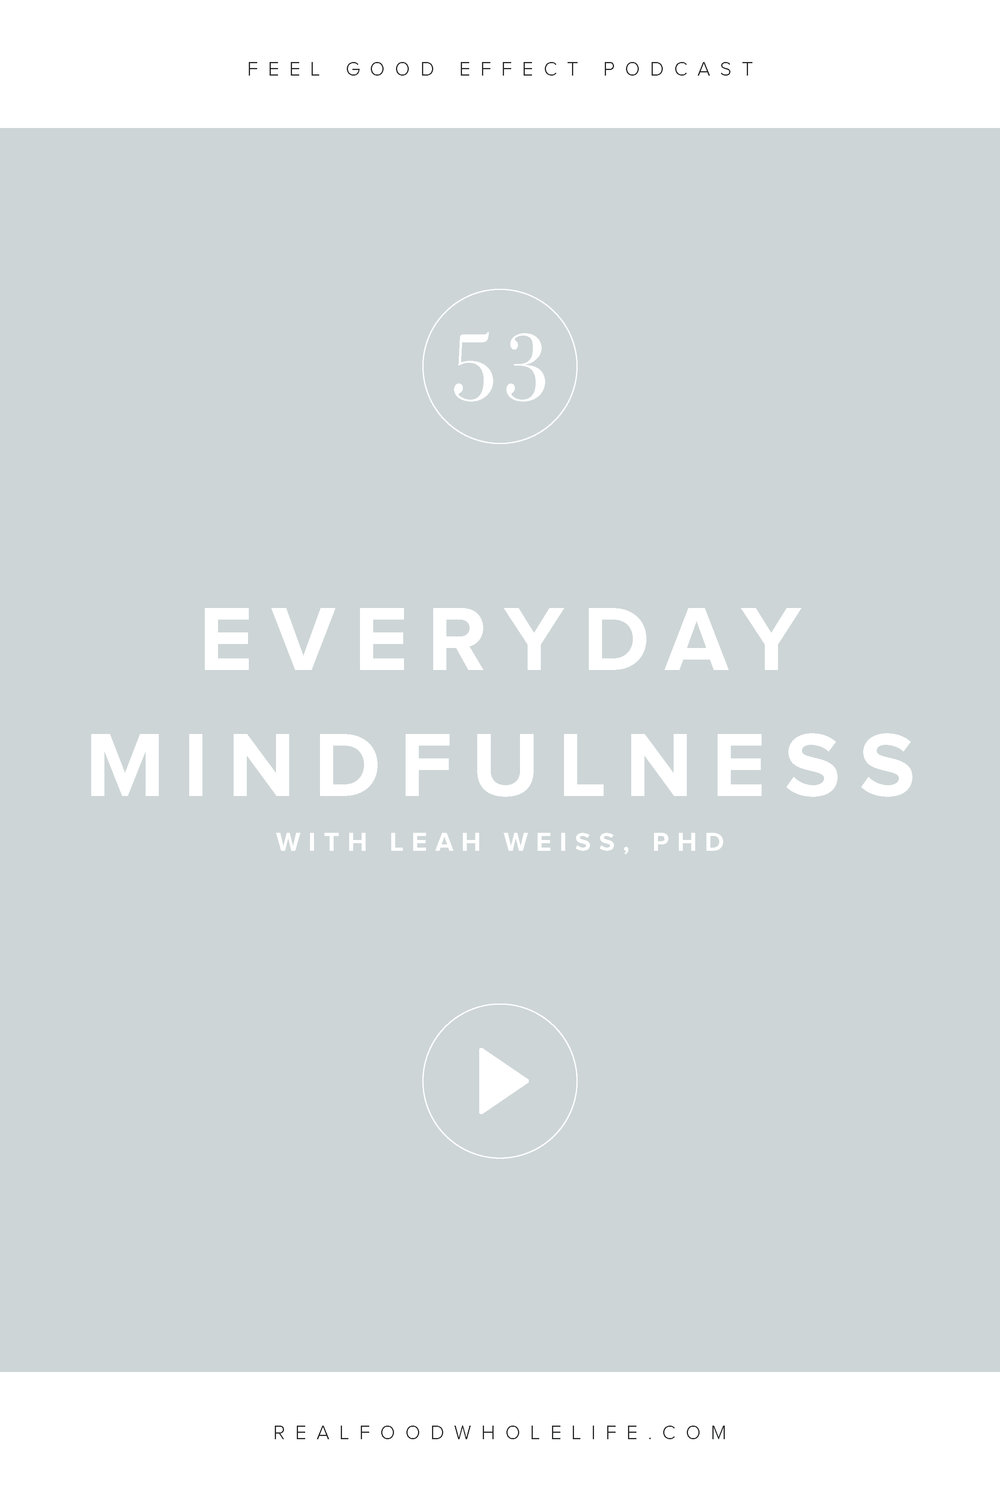 Mindfulness tips and strategies for real life and the workplace with mindfulness expert, Dr. Leah Weiss.  An interview on the Feel Good Effect podcast. #feelgoodeffect #realfoodwholelife #mindfulness #wellnesspodcast #healthy